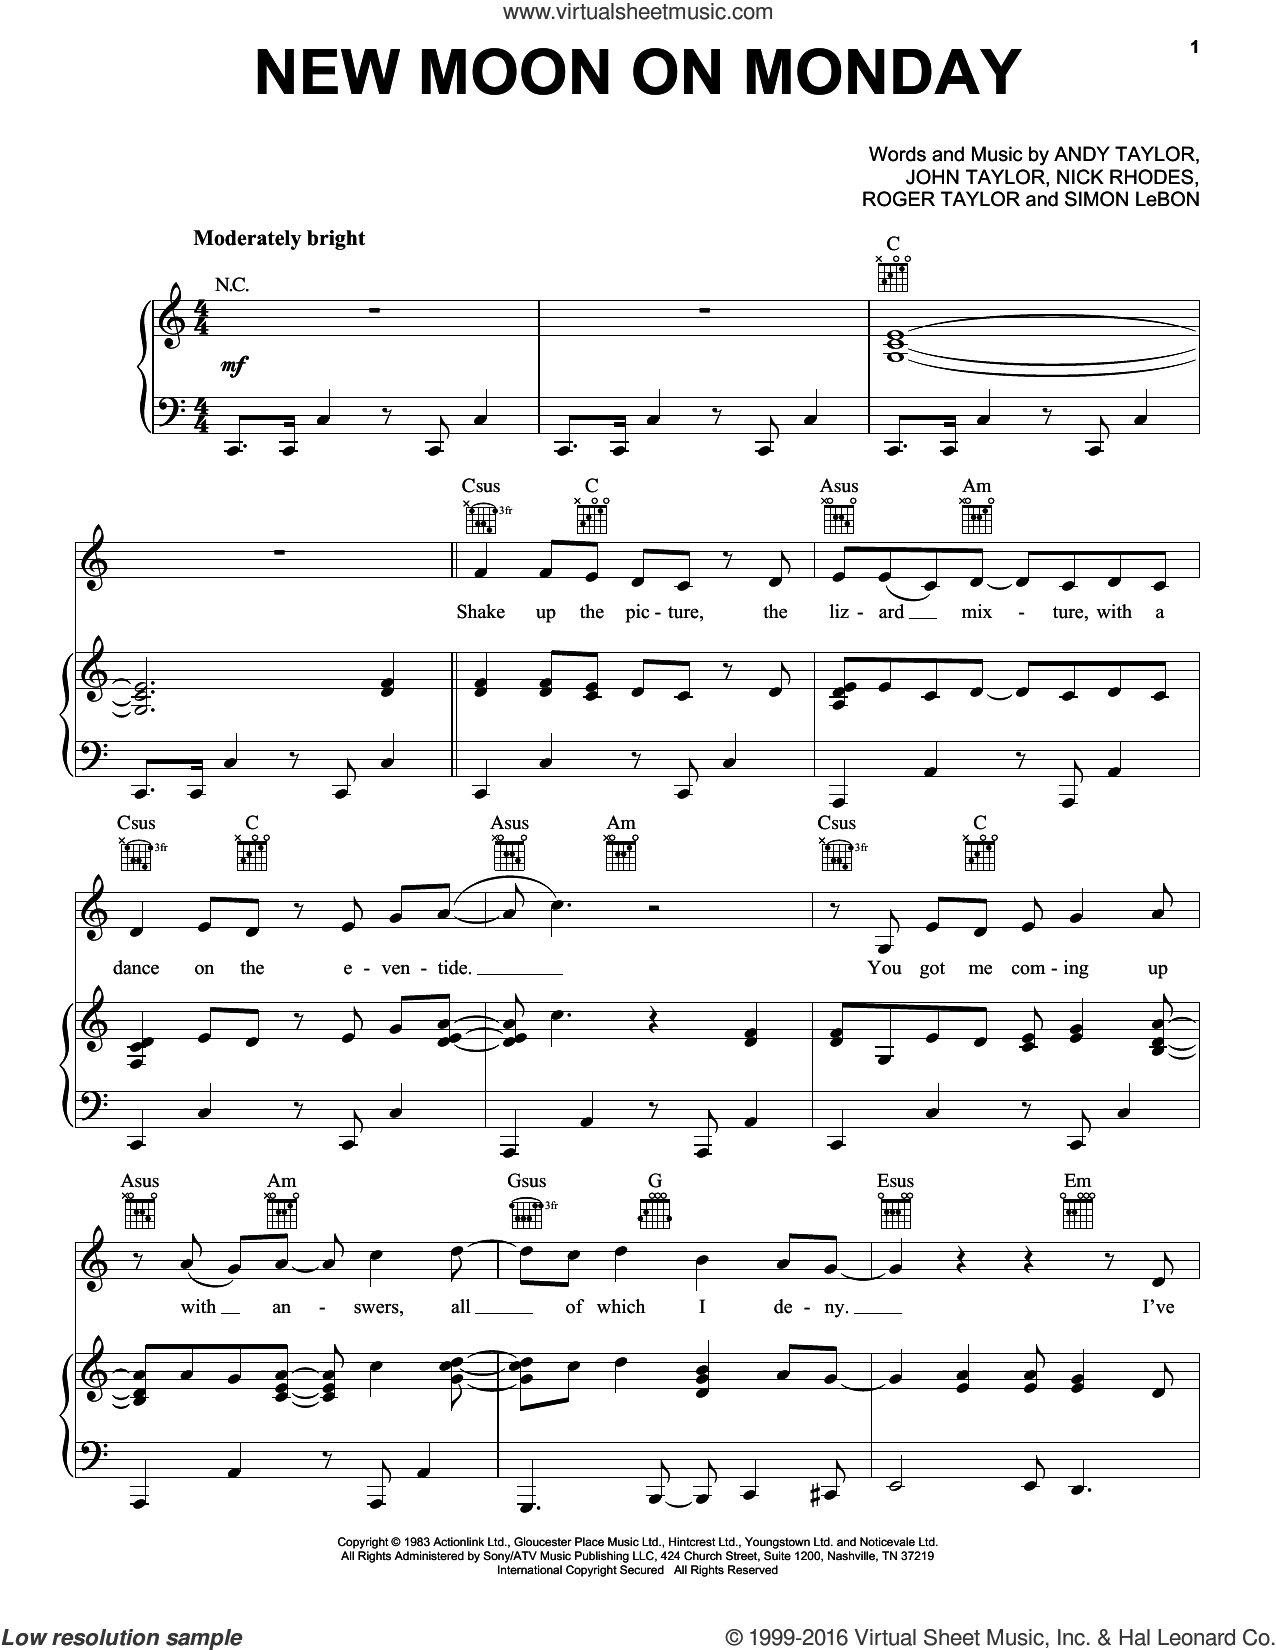 New Moon On Monday sheet music for voice, piano or guitar by Duran Duran and John Taylor. Score Image Preview.